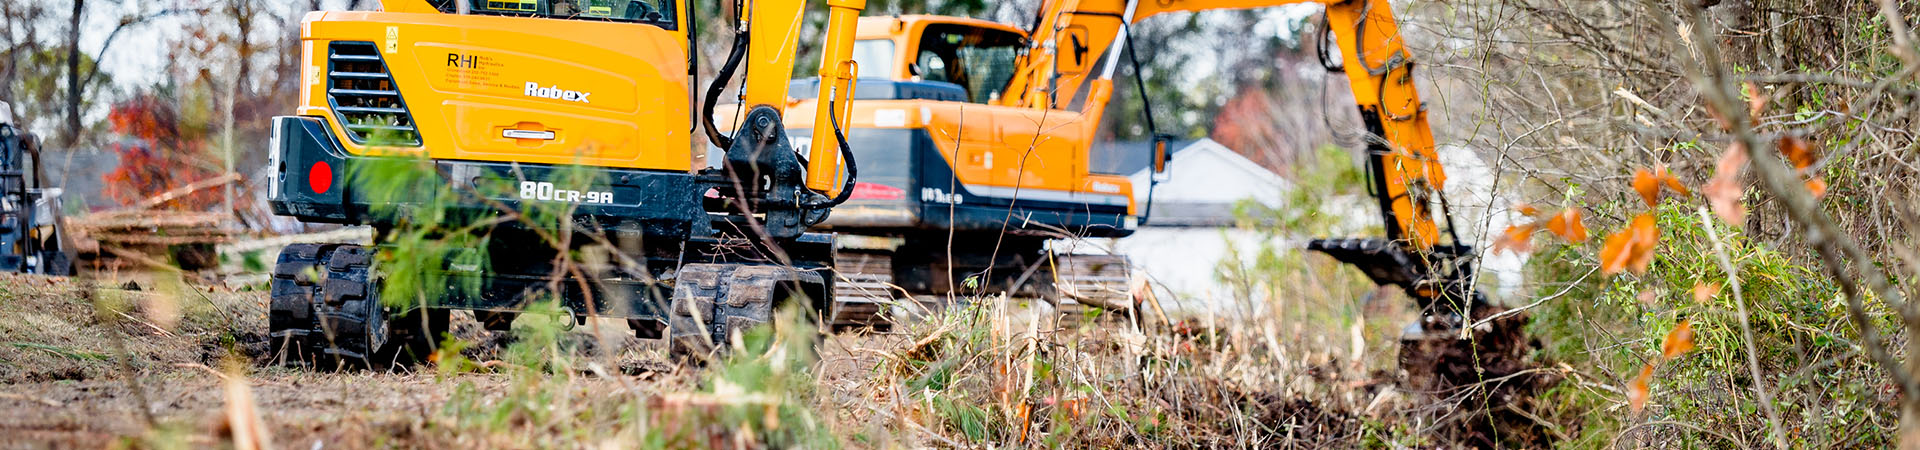 backhoe digging in ditch